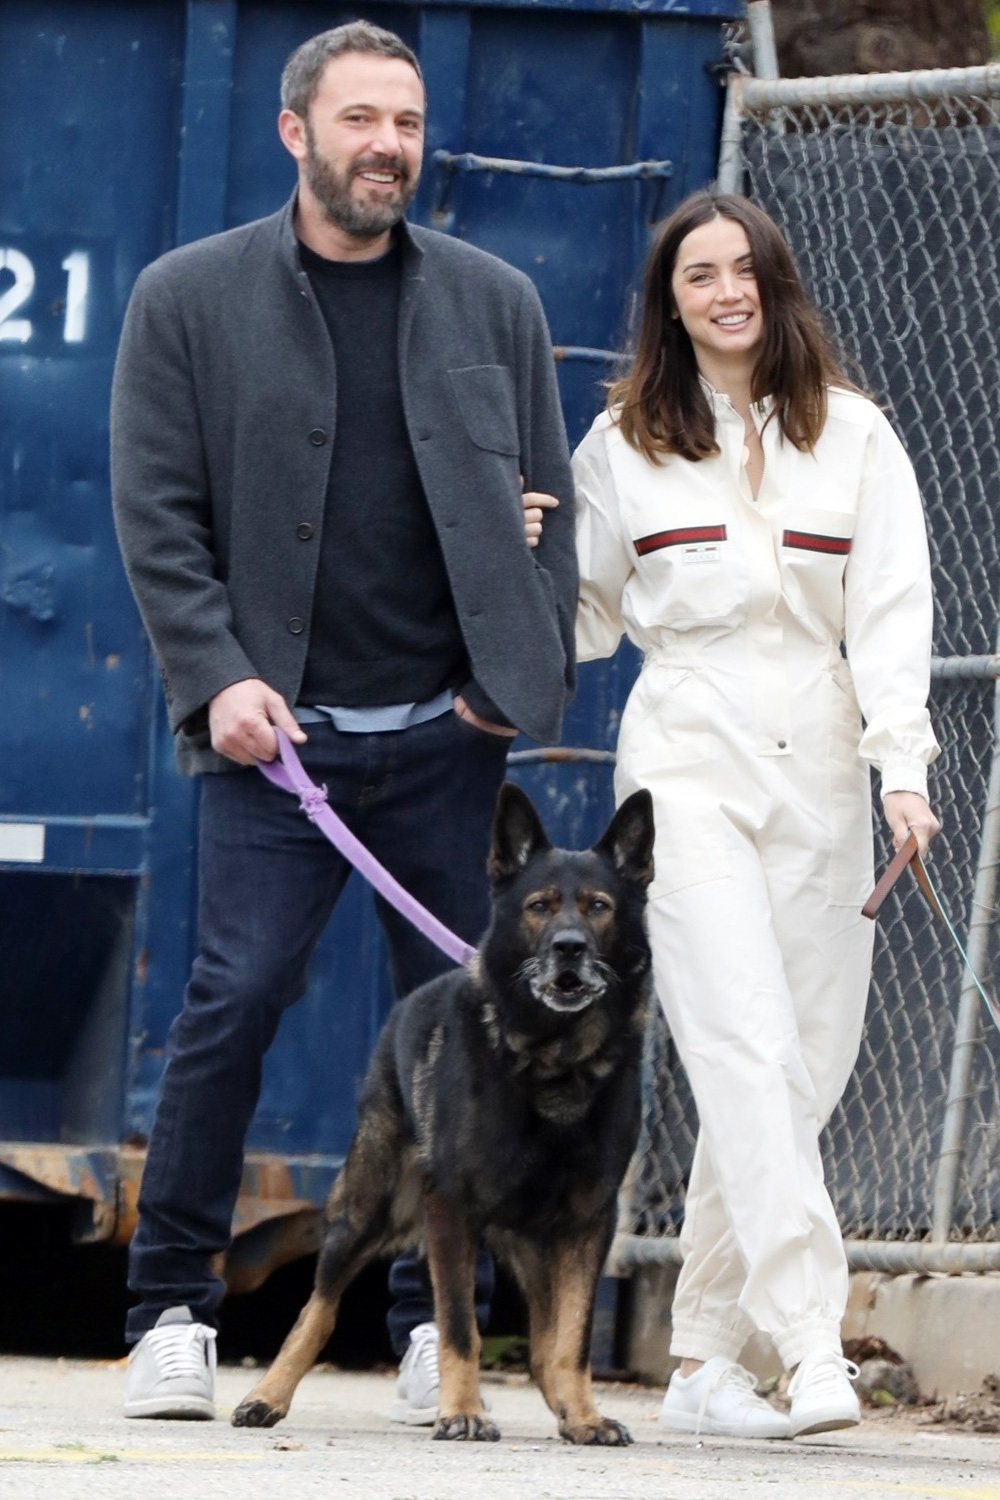 Ben Affleck goes for a morning stroll with girlfriend Ana de Armas on Easter Sunday